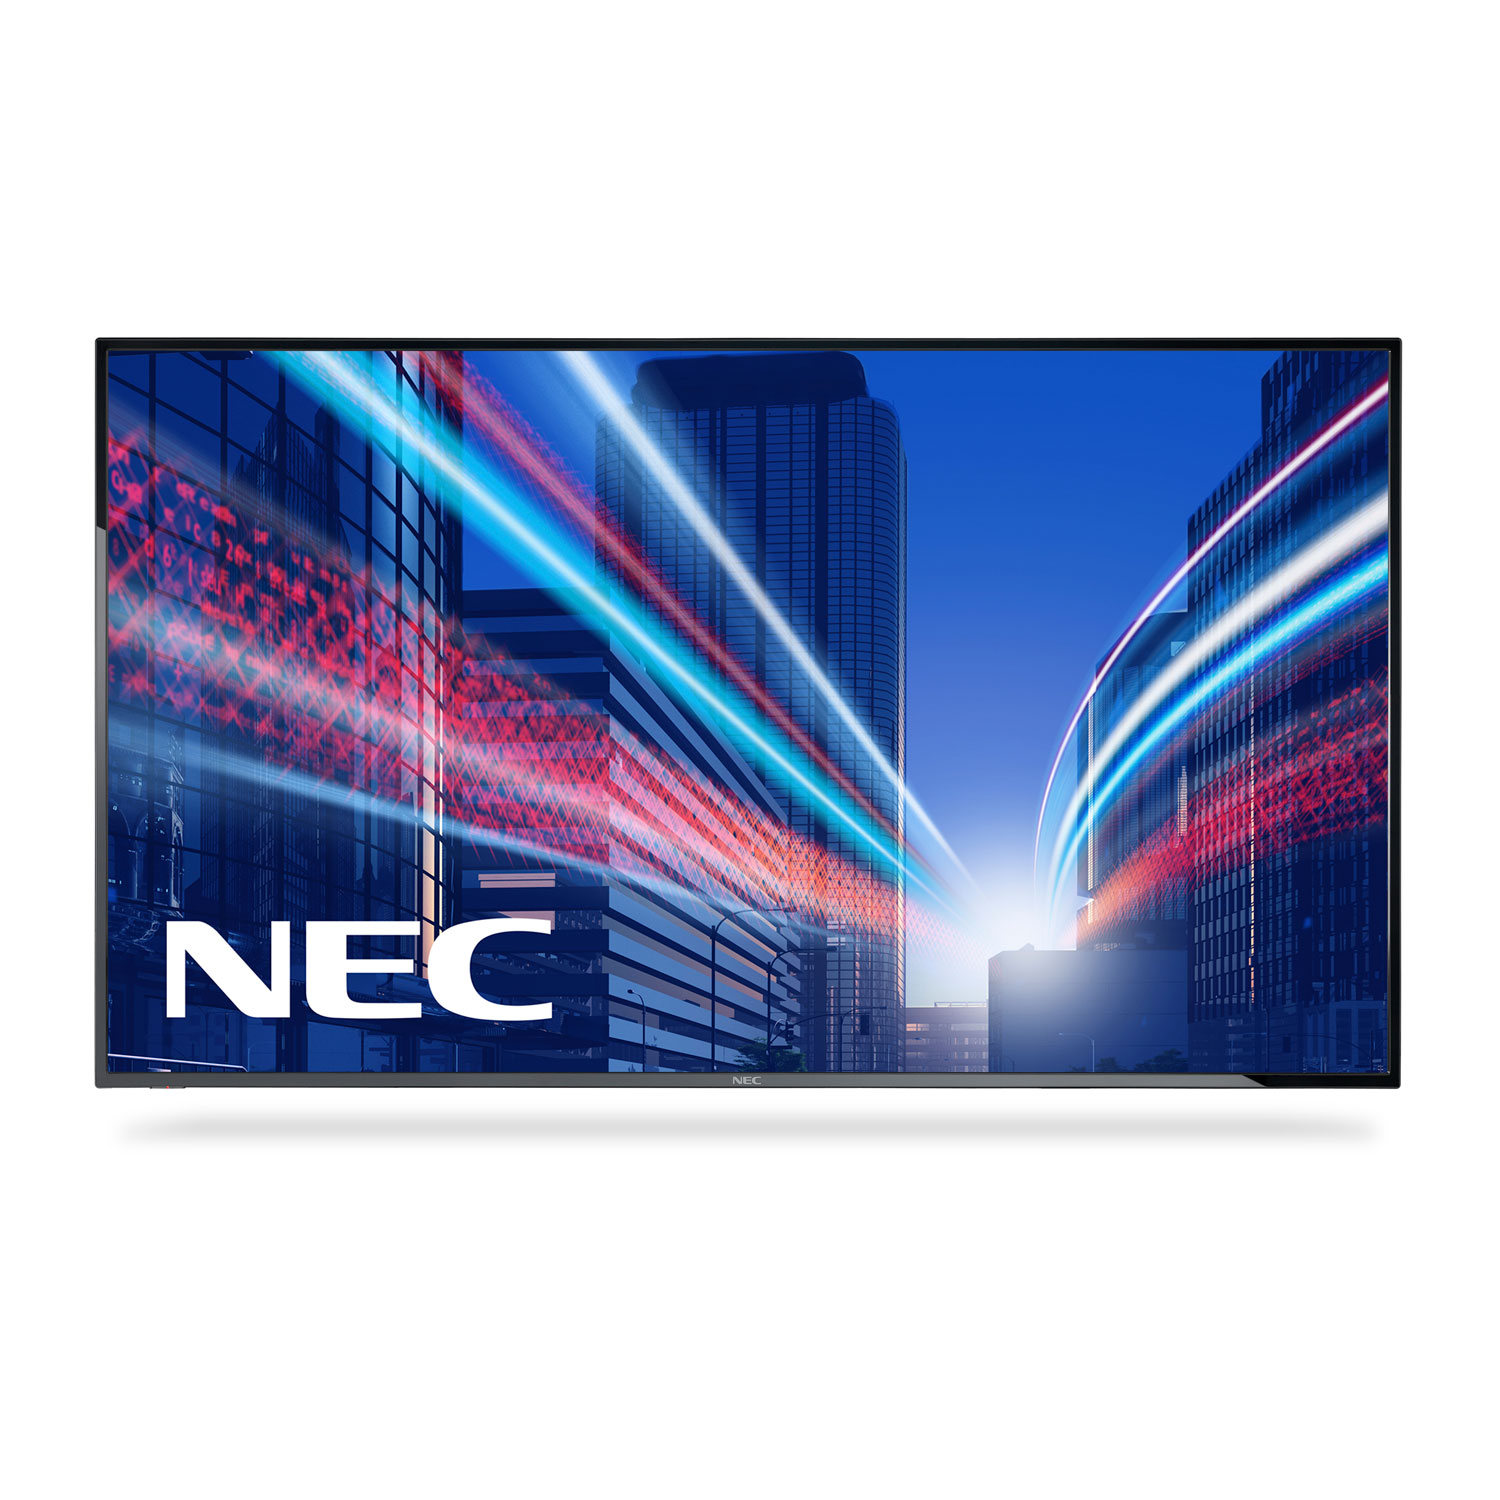 Nec 32 led multisync e325 ecran dynamique nec sur - 32 inch wallpaper tv ...